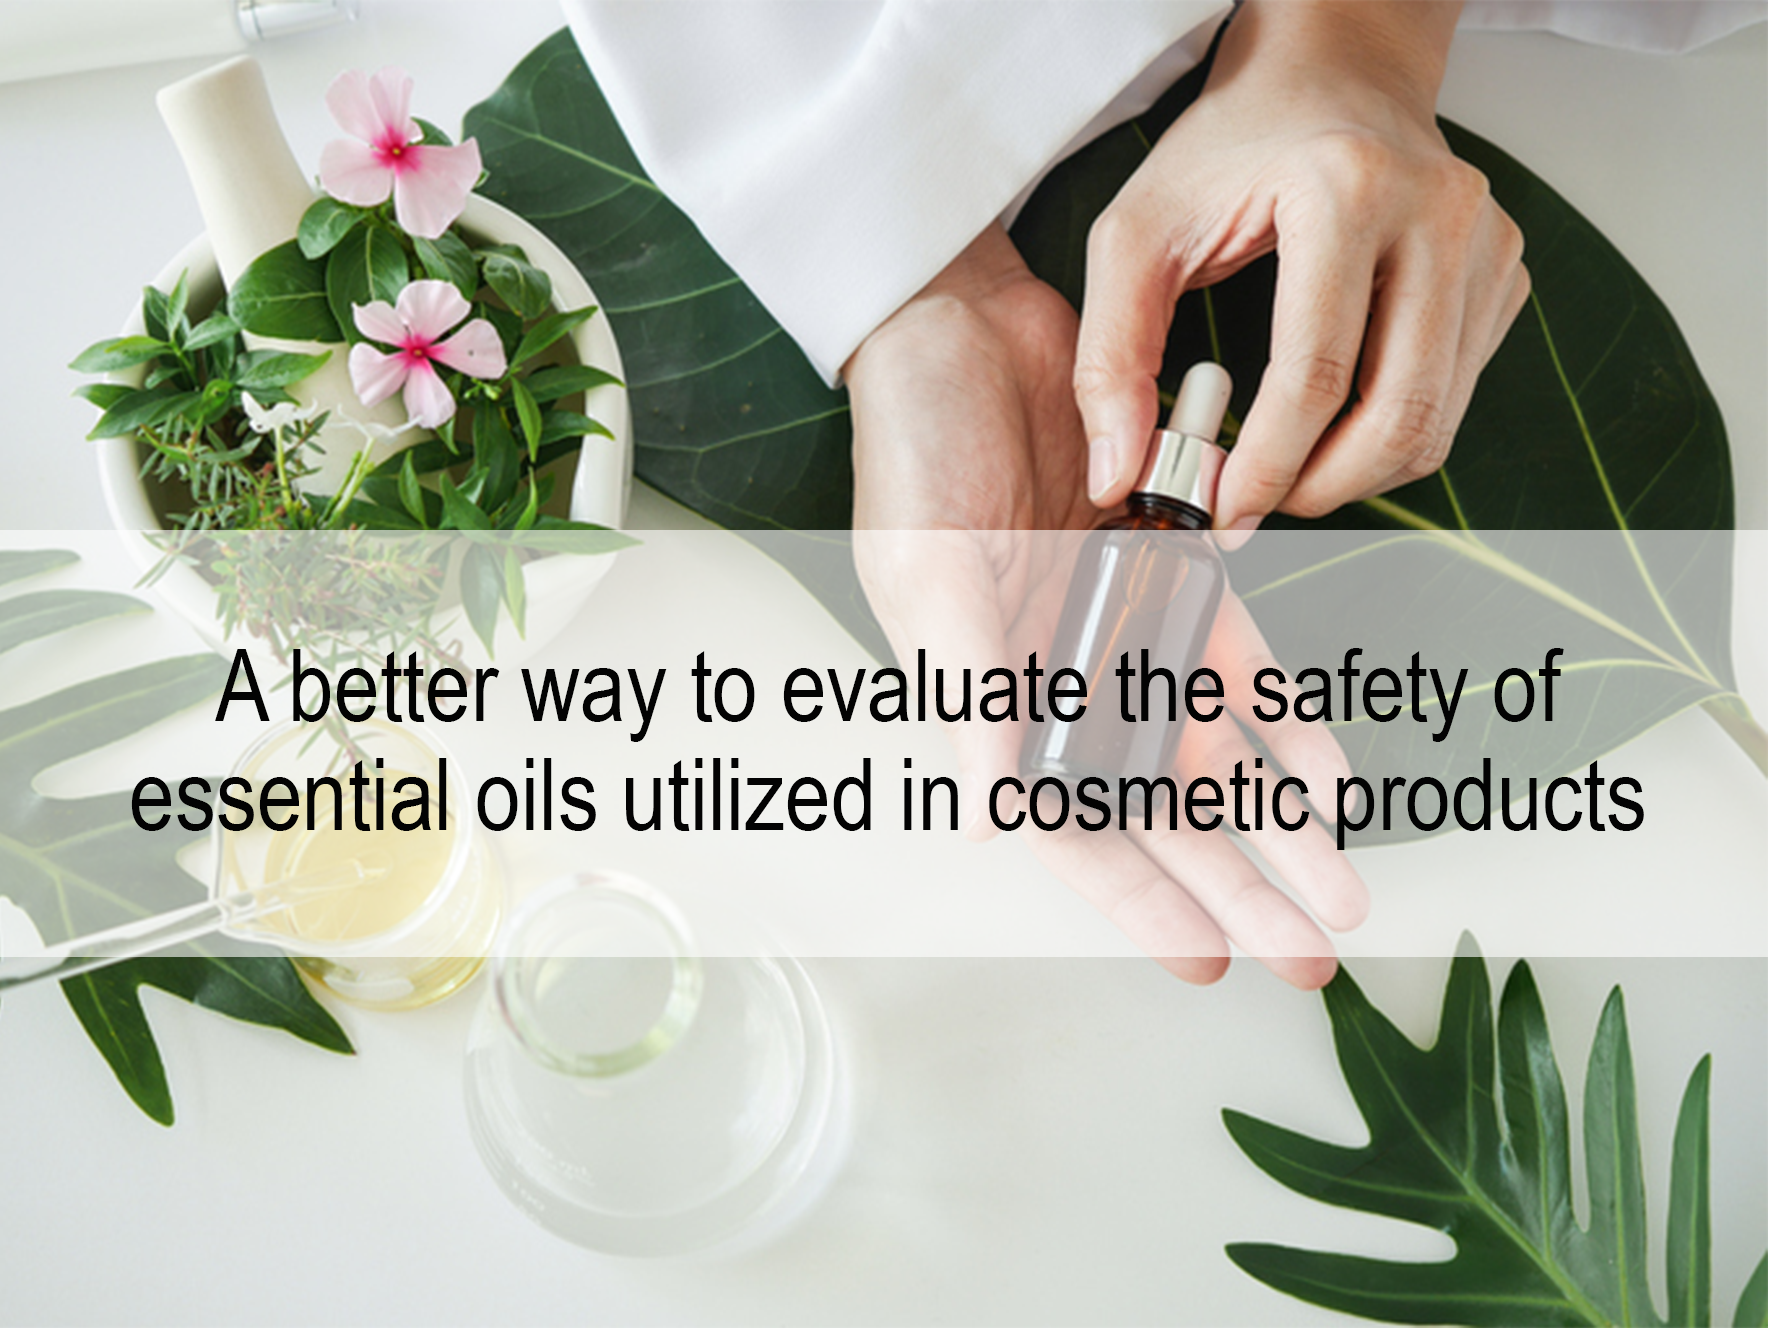 A better way to evaluate the safety of essential oils utilized in cosmetic products by Eurosafe